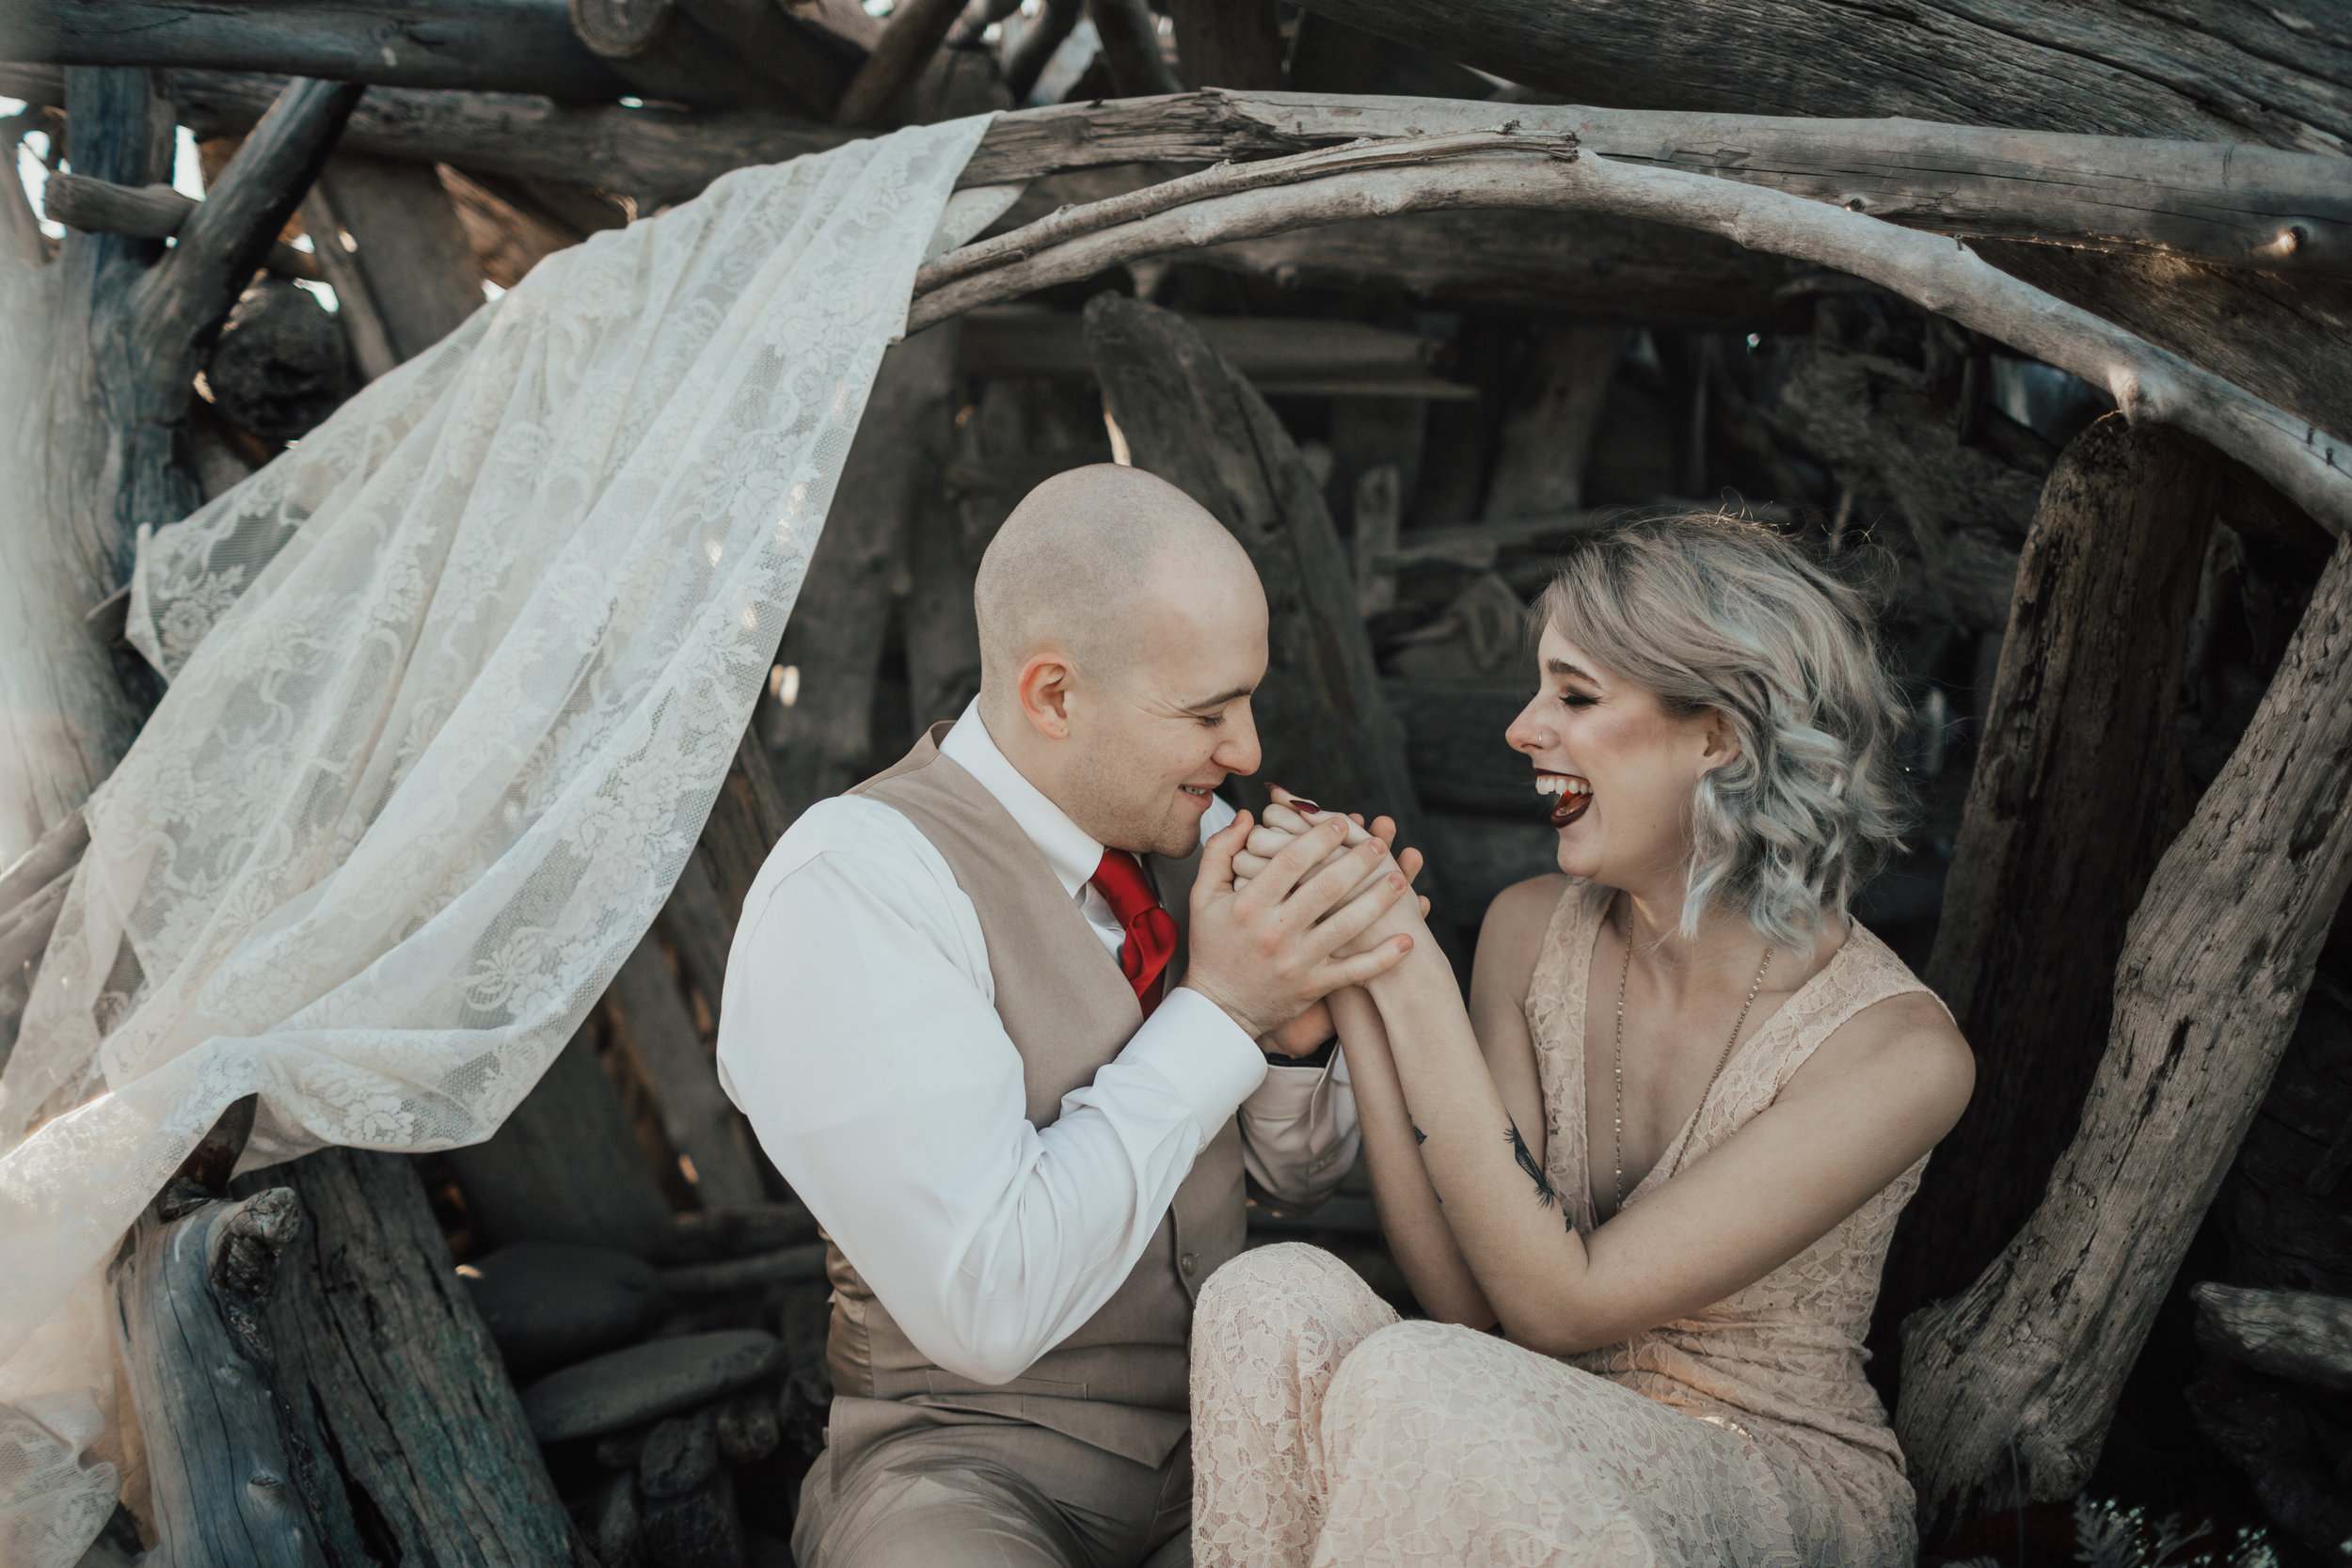 Port Angeles-PNW-Sequim-Portrait-wedding-elopement-photographer-kayladawnphoto-kayla dawn photography-olympic peninsula-portraiture84.jpg